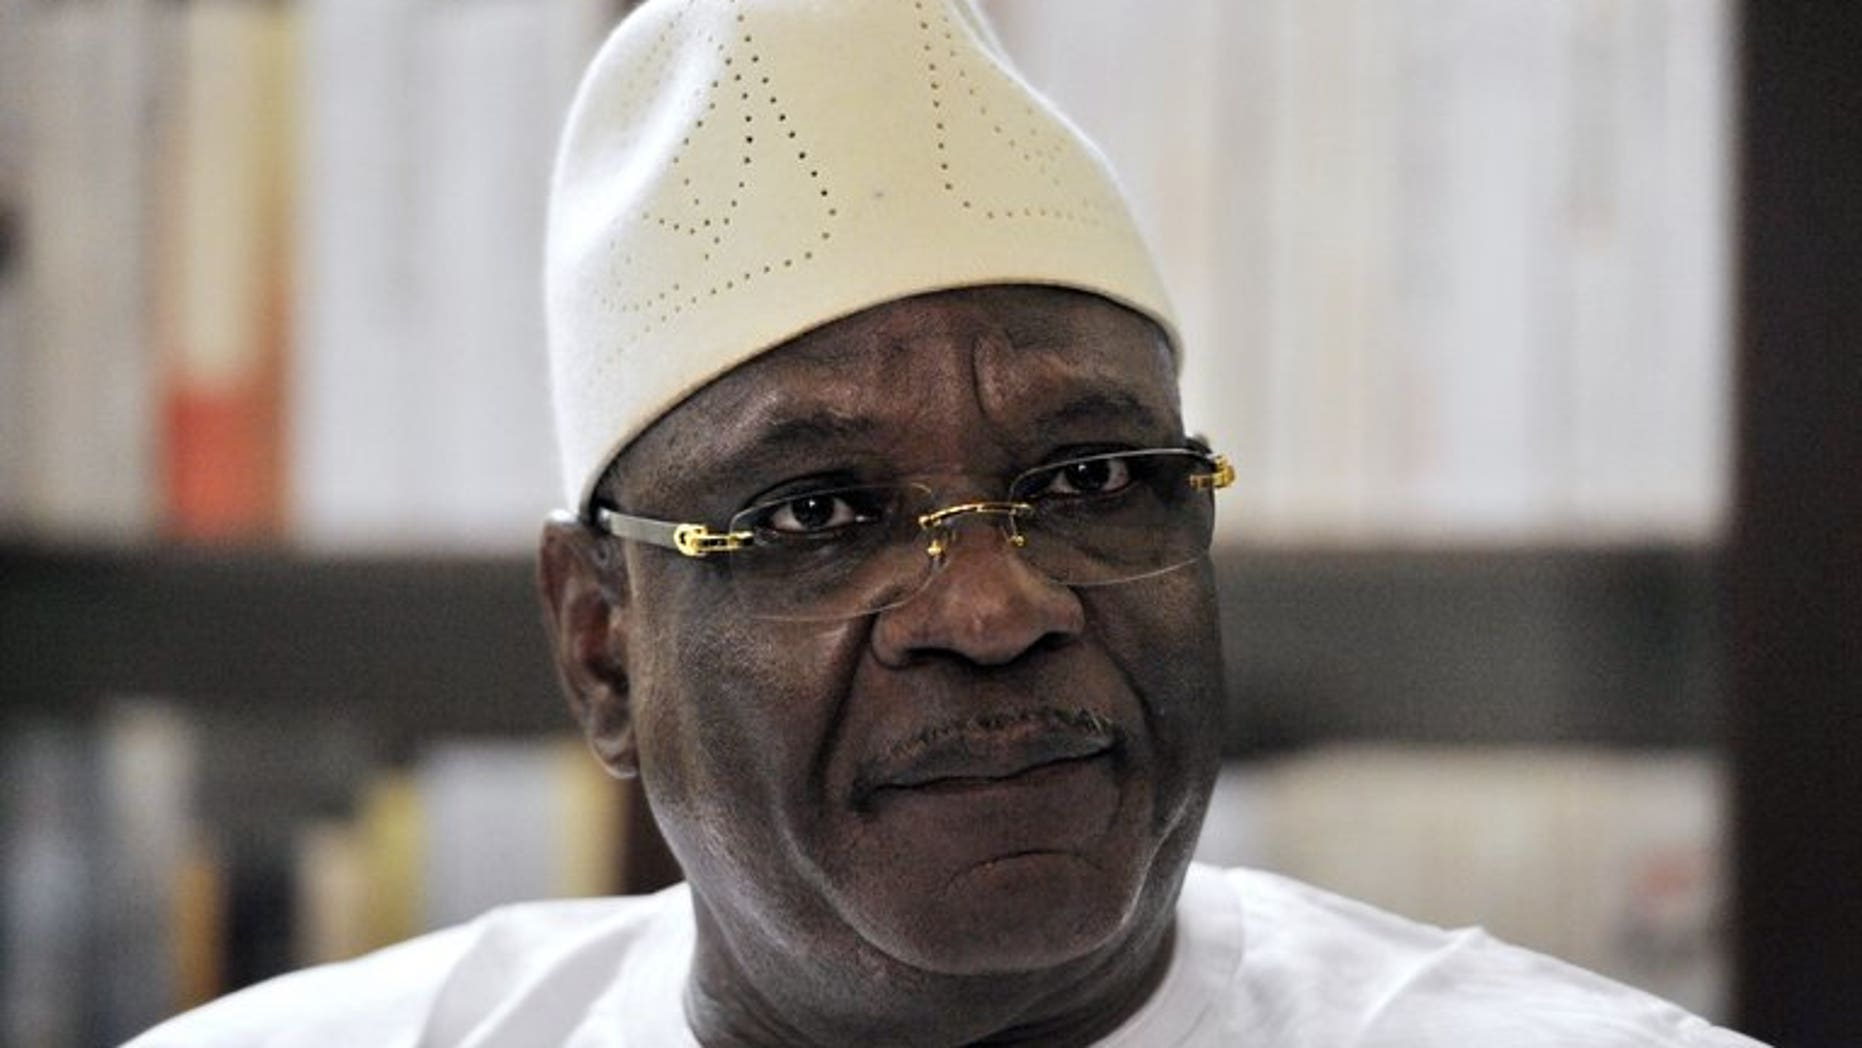 Ibrahim Boubacar Keita speaks in an interview in Bamako on August 9. Mali announced Ibrahim Boubacar Keita as its new leader on Thursday when the government confirmed the ex-prime minister had won a landslide victory in a presidential poll intended to give a fresh start to the conflict-scarred nation.